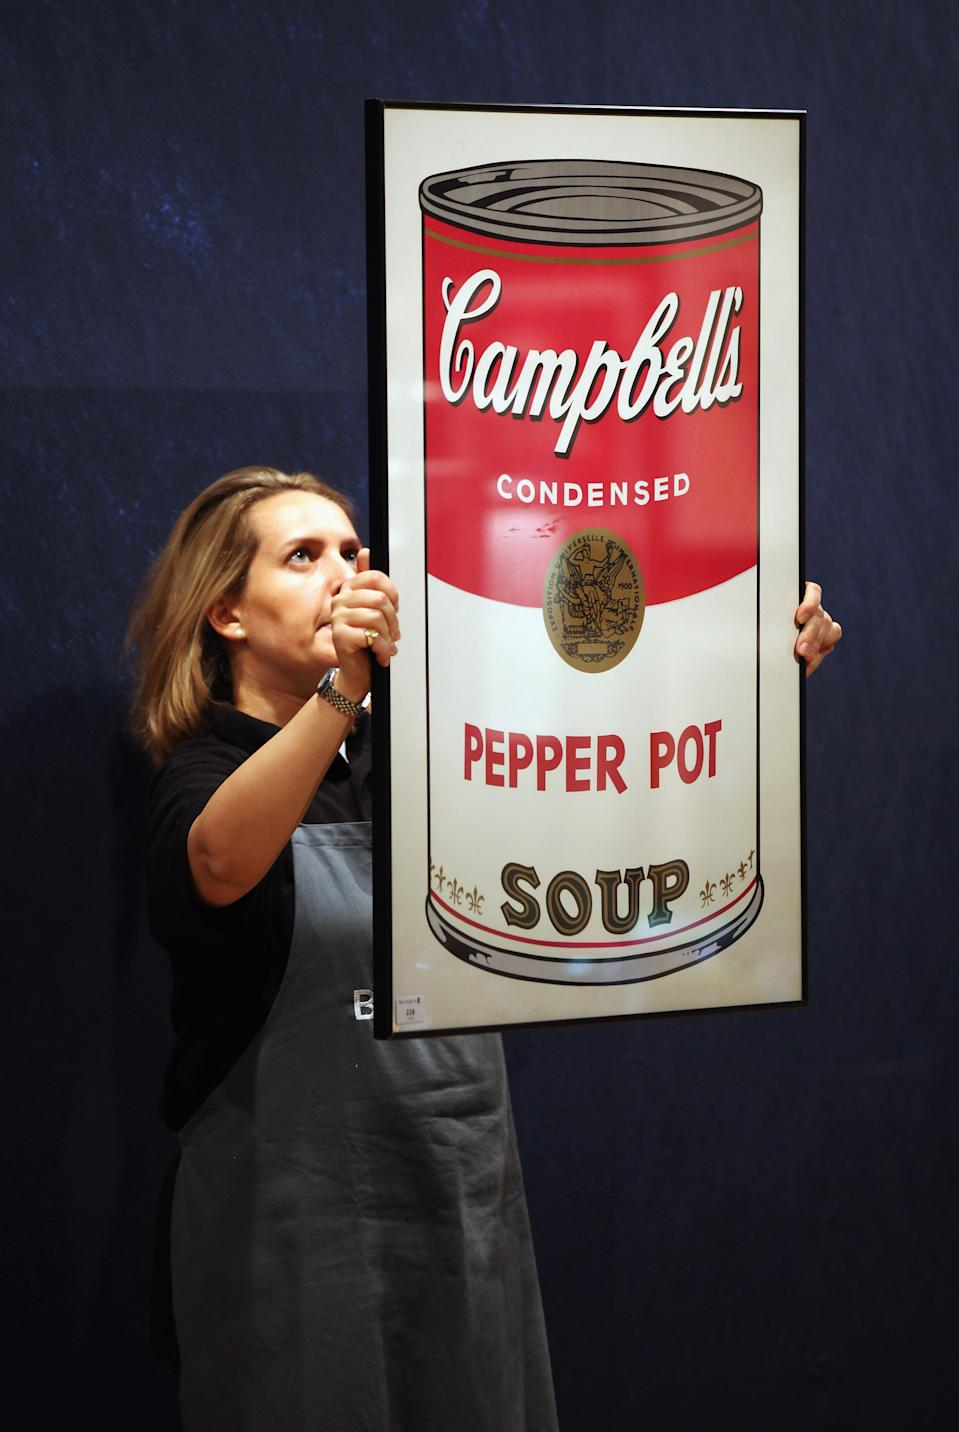 """Evidence of Campbell's pepper pot soup, as seen in an Andy Warhol print entitled """"Campbell's Soup I: Pepper Pot,"""" auctioned in 2011. (Photo: Oli Scarff/Getty Images)"""